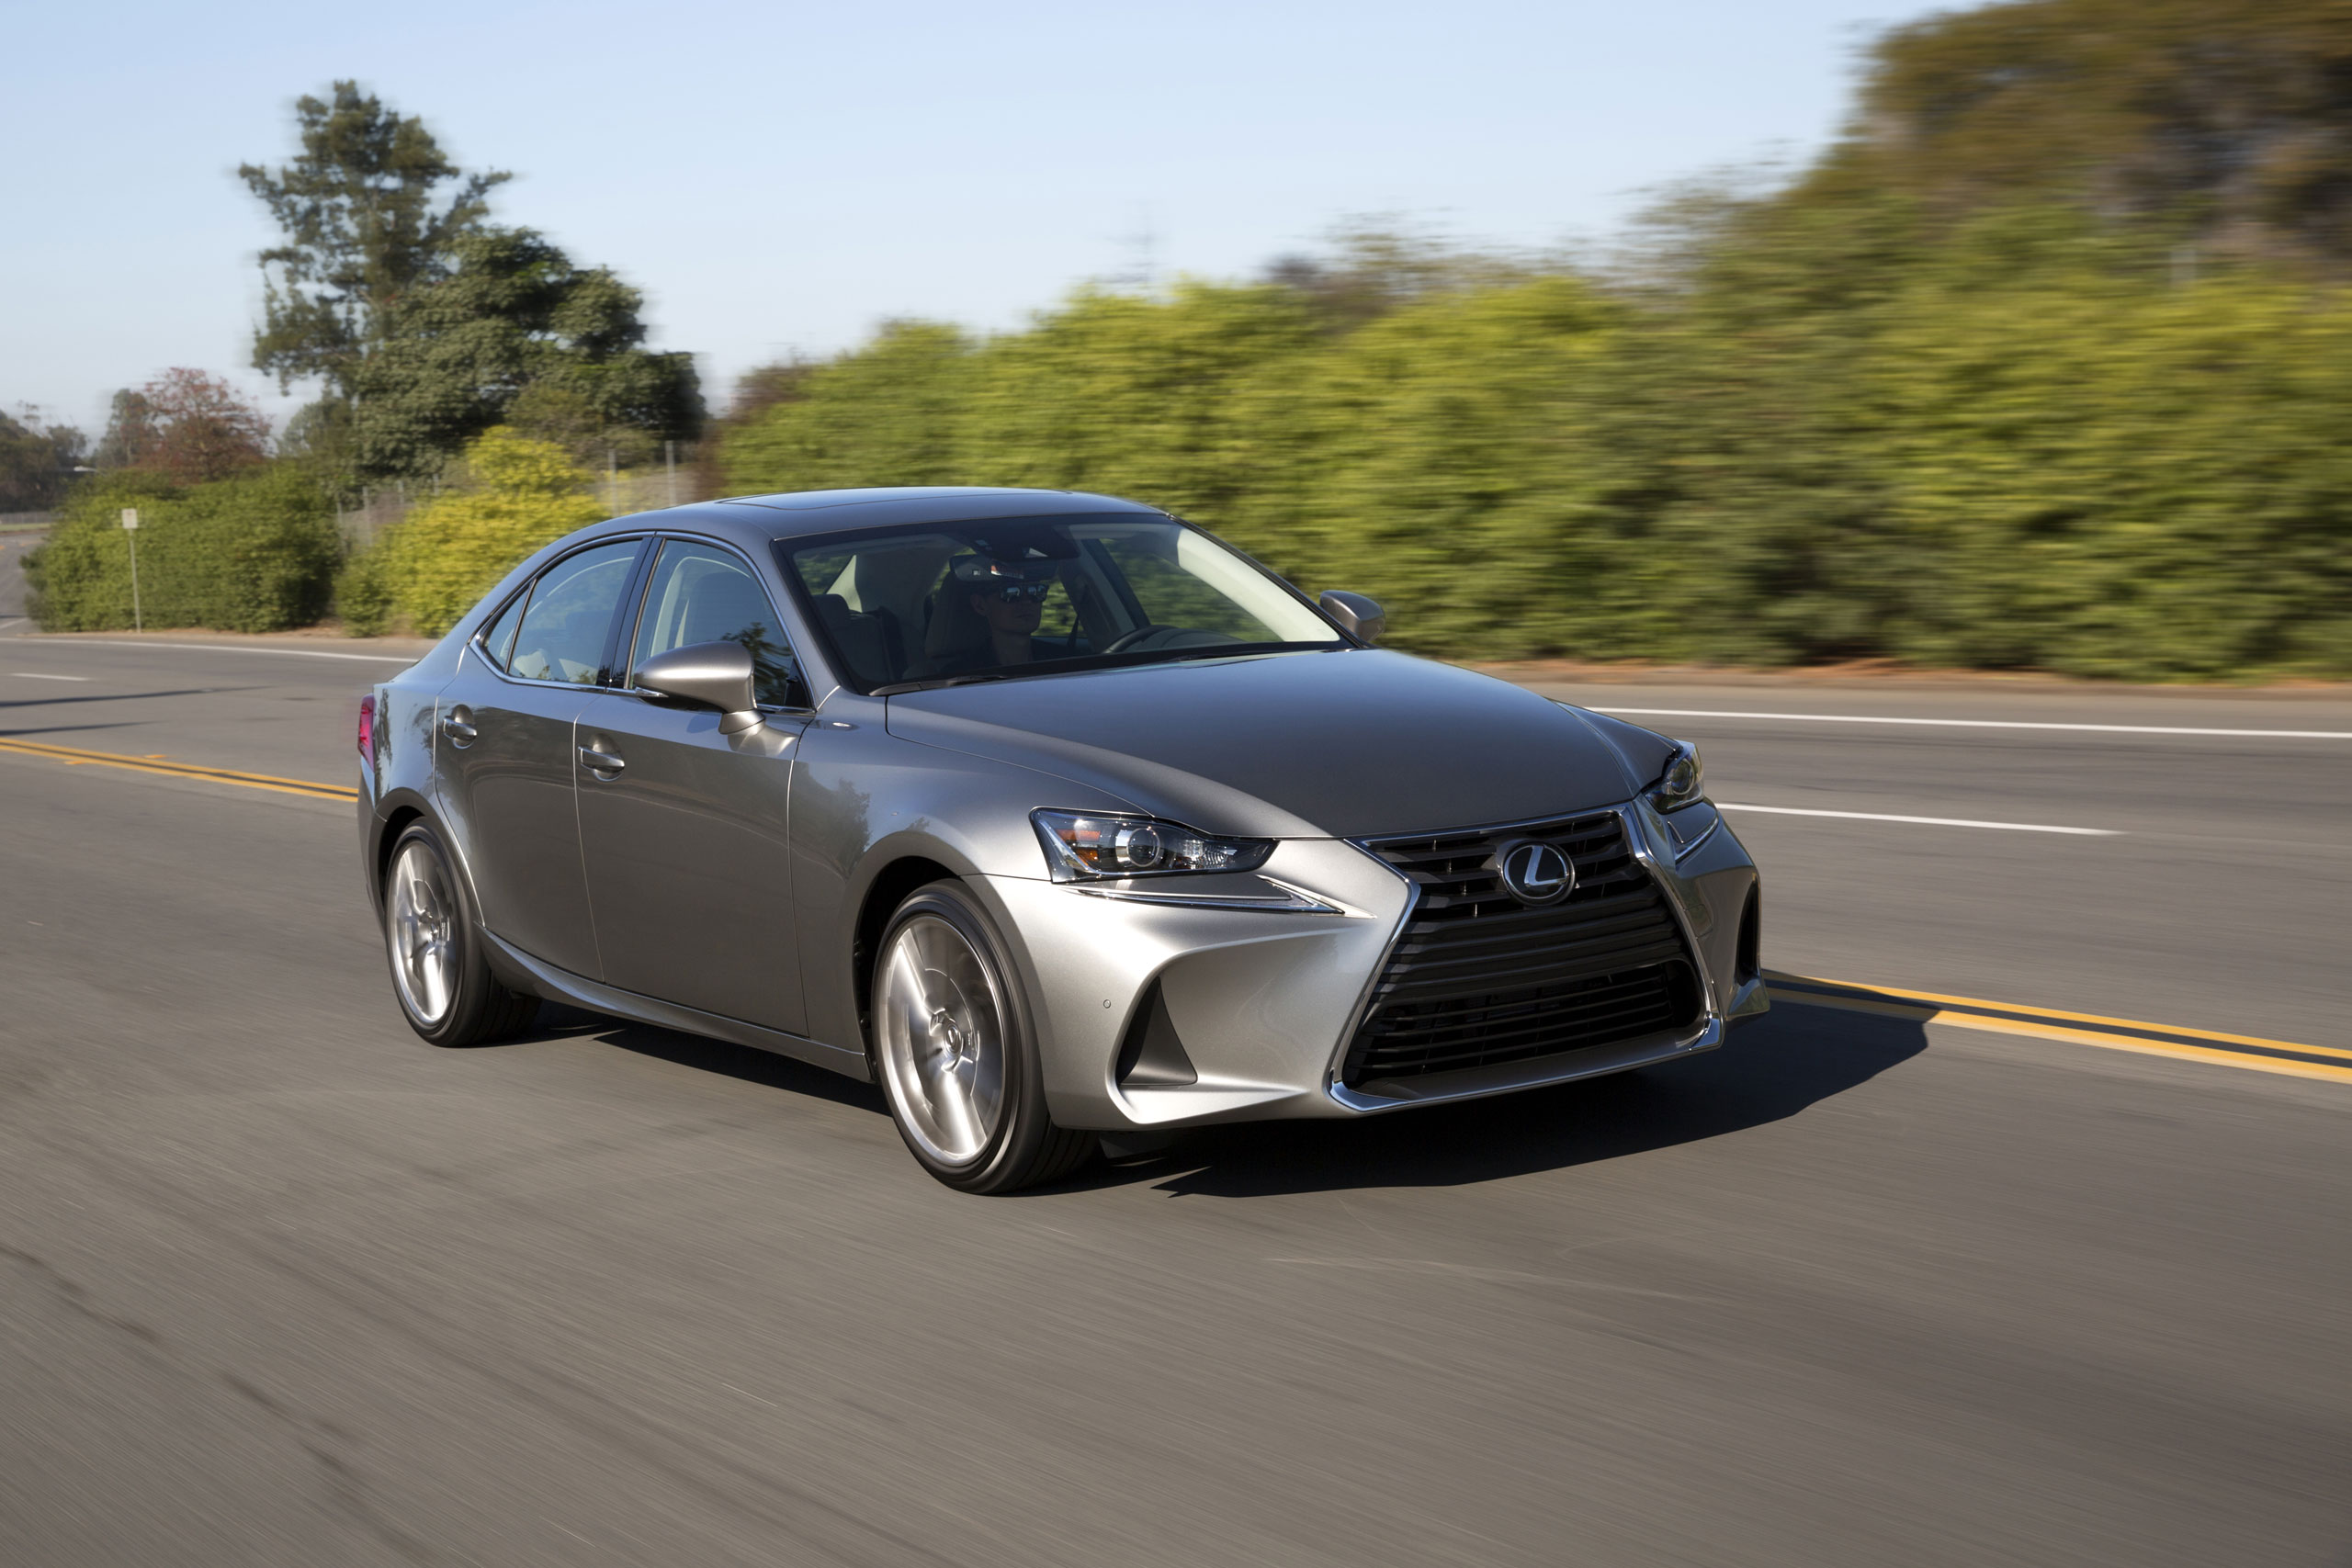 2017 Lexus IS and IS F Sport Launched With Fresh